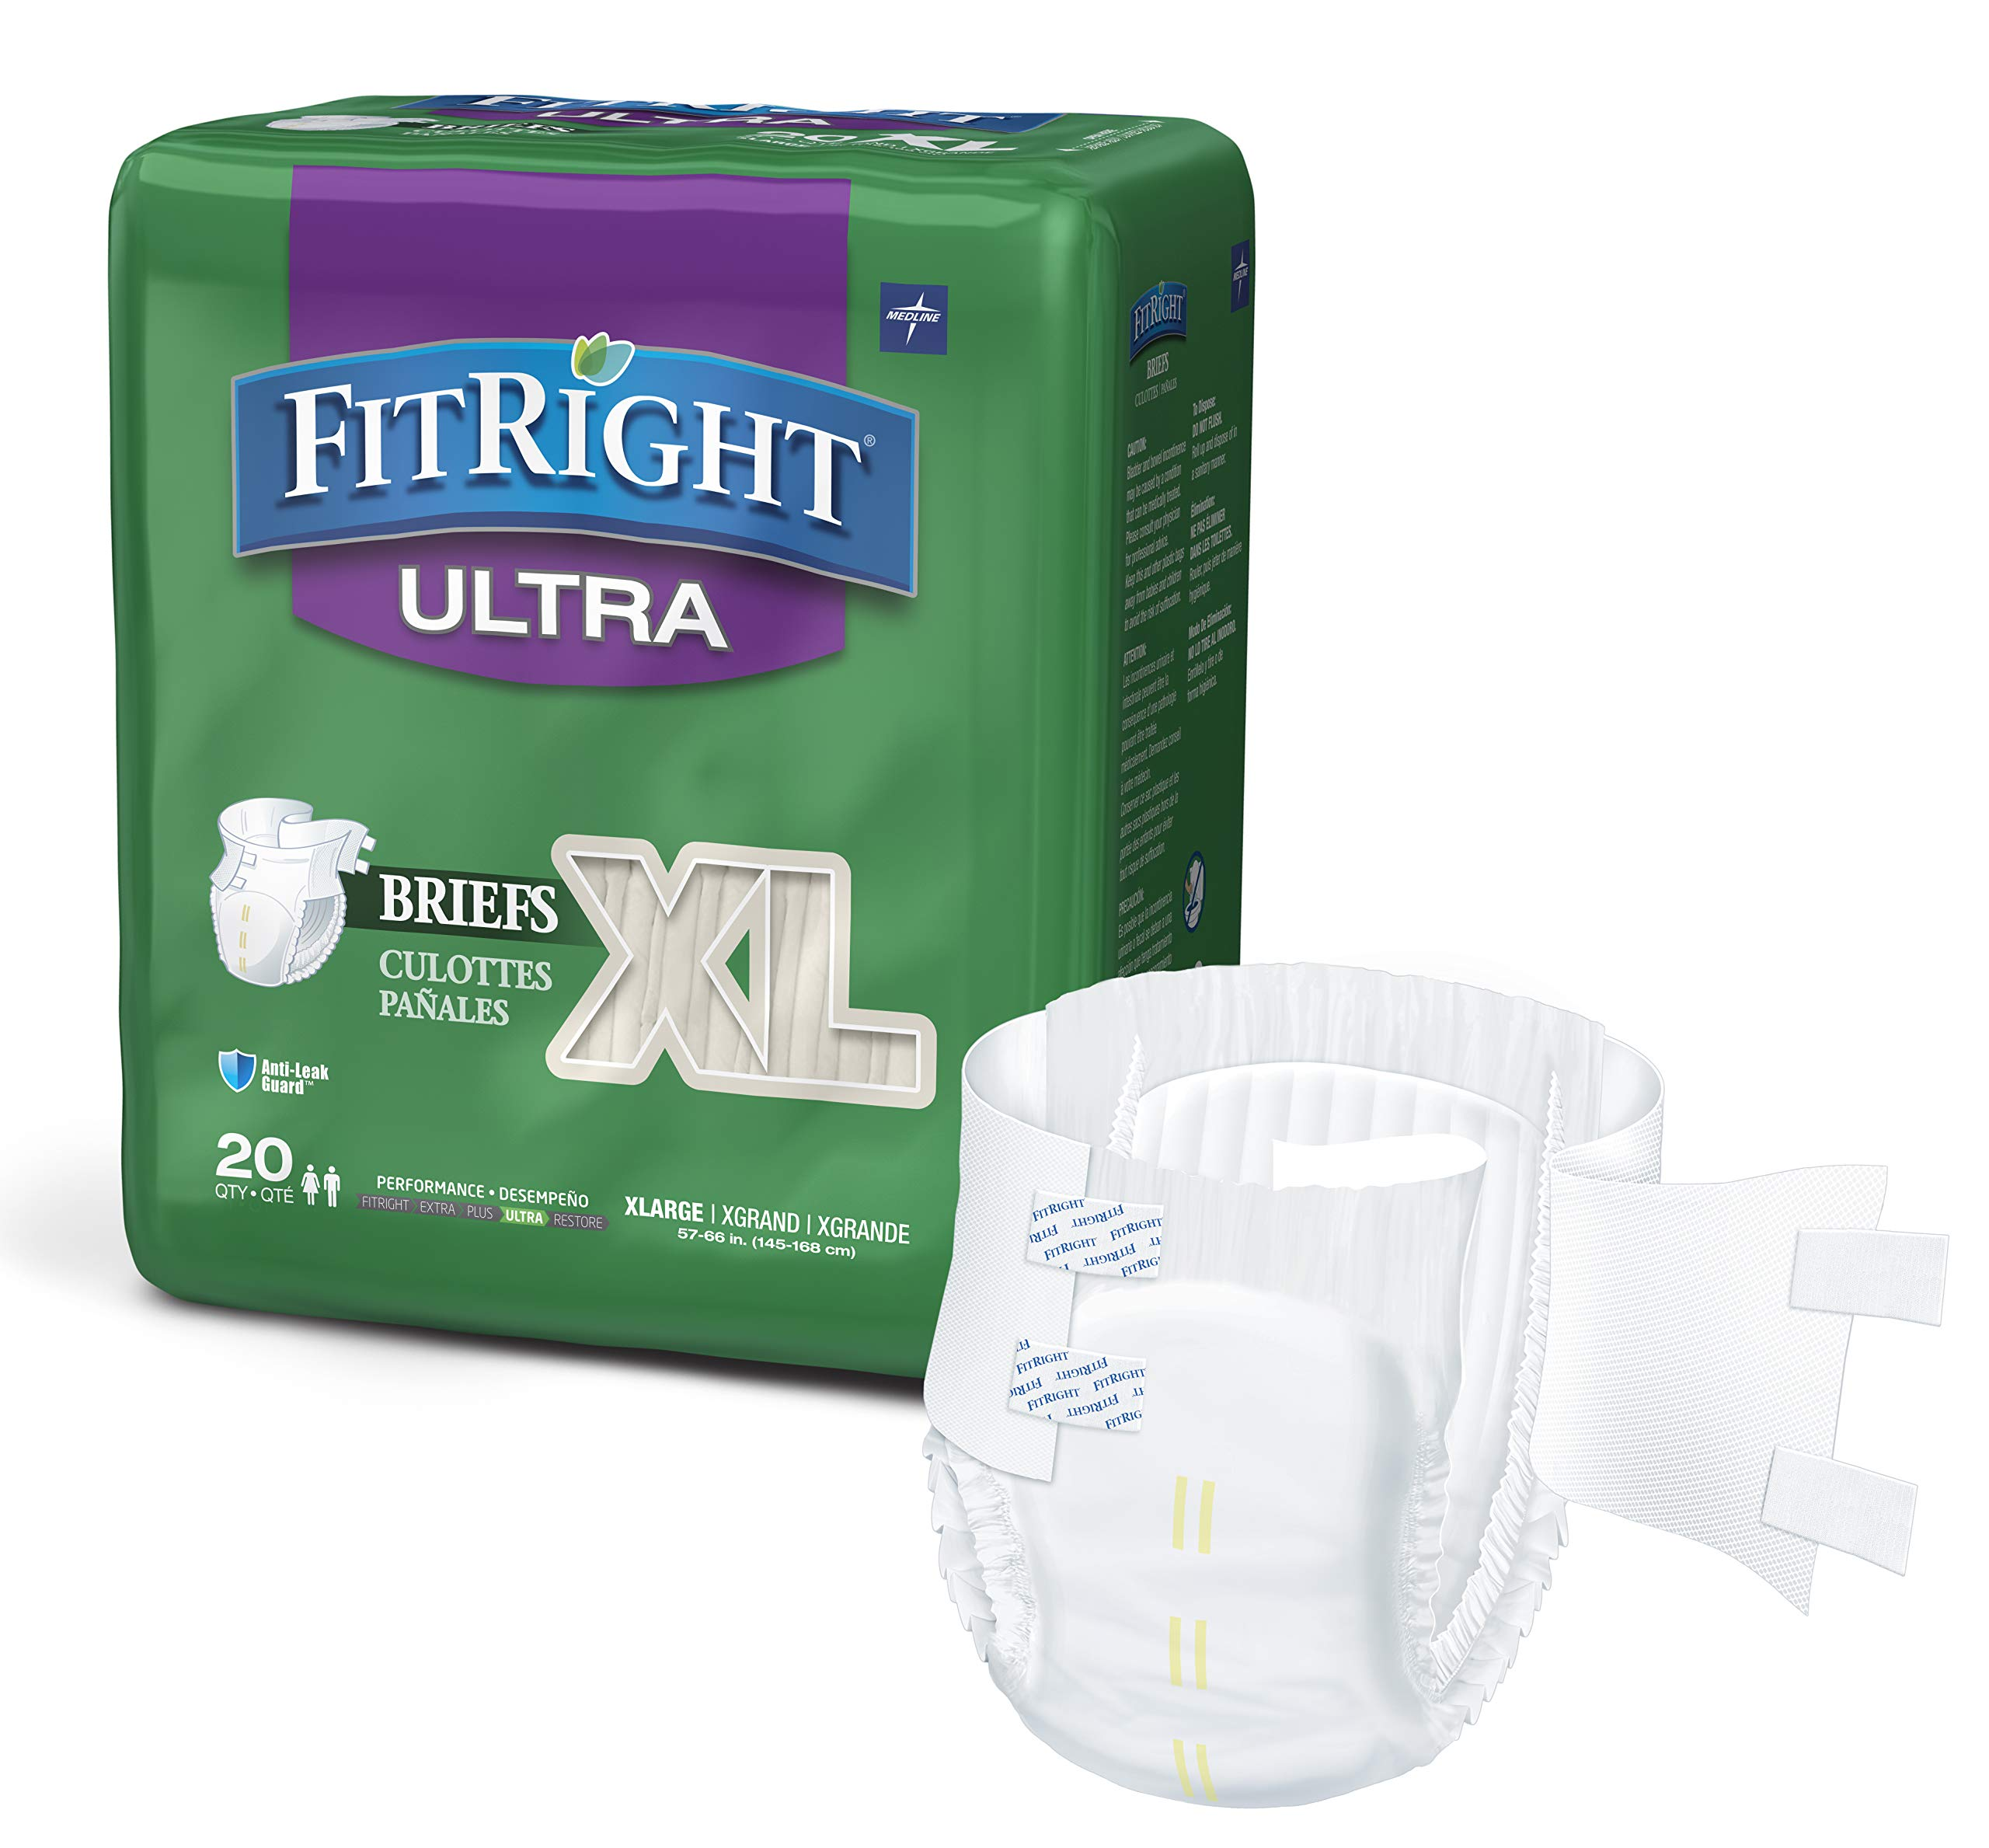 FitRight Ultra Adult Diapers, Disposable Incontinence Briefs with Tabs, Heavy Absorbency, X-Large, 57''-66'', 4 packs of 20 (80 total) by Medline